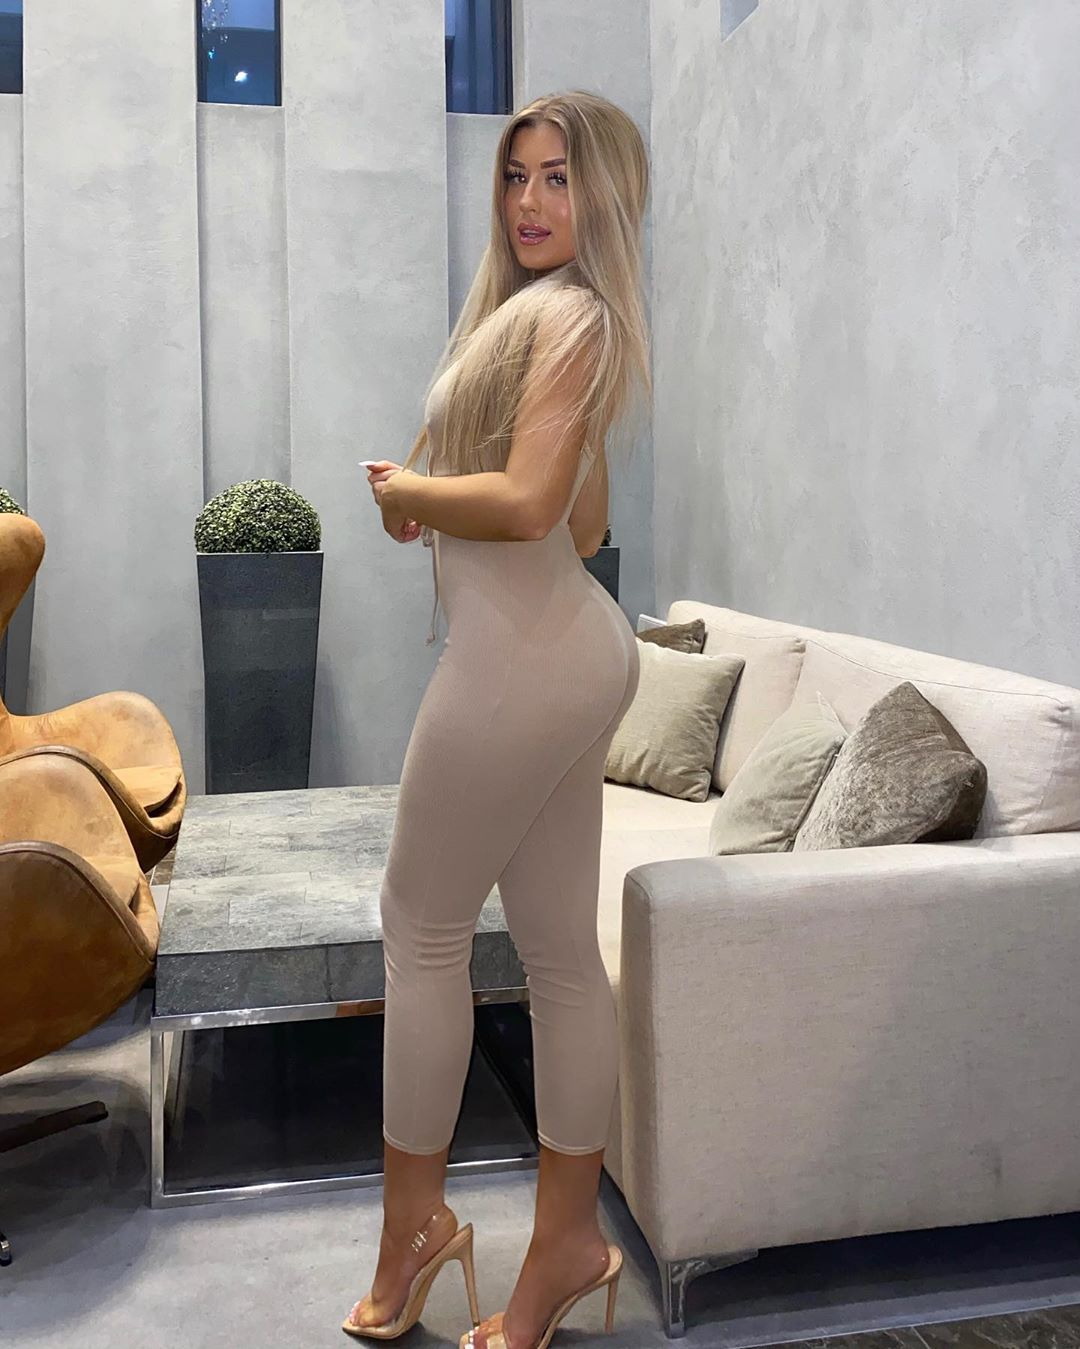 Jessica-Gale-Wallpapers-Insta-Fit-BIo-2